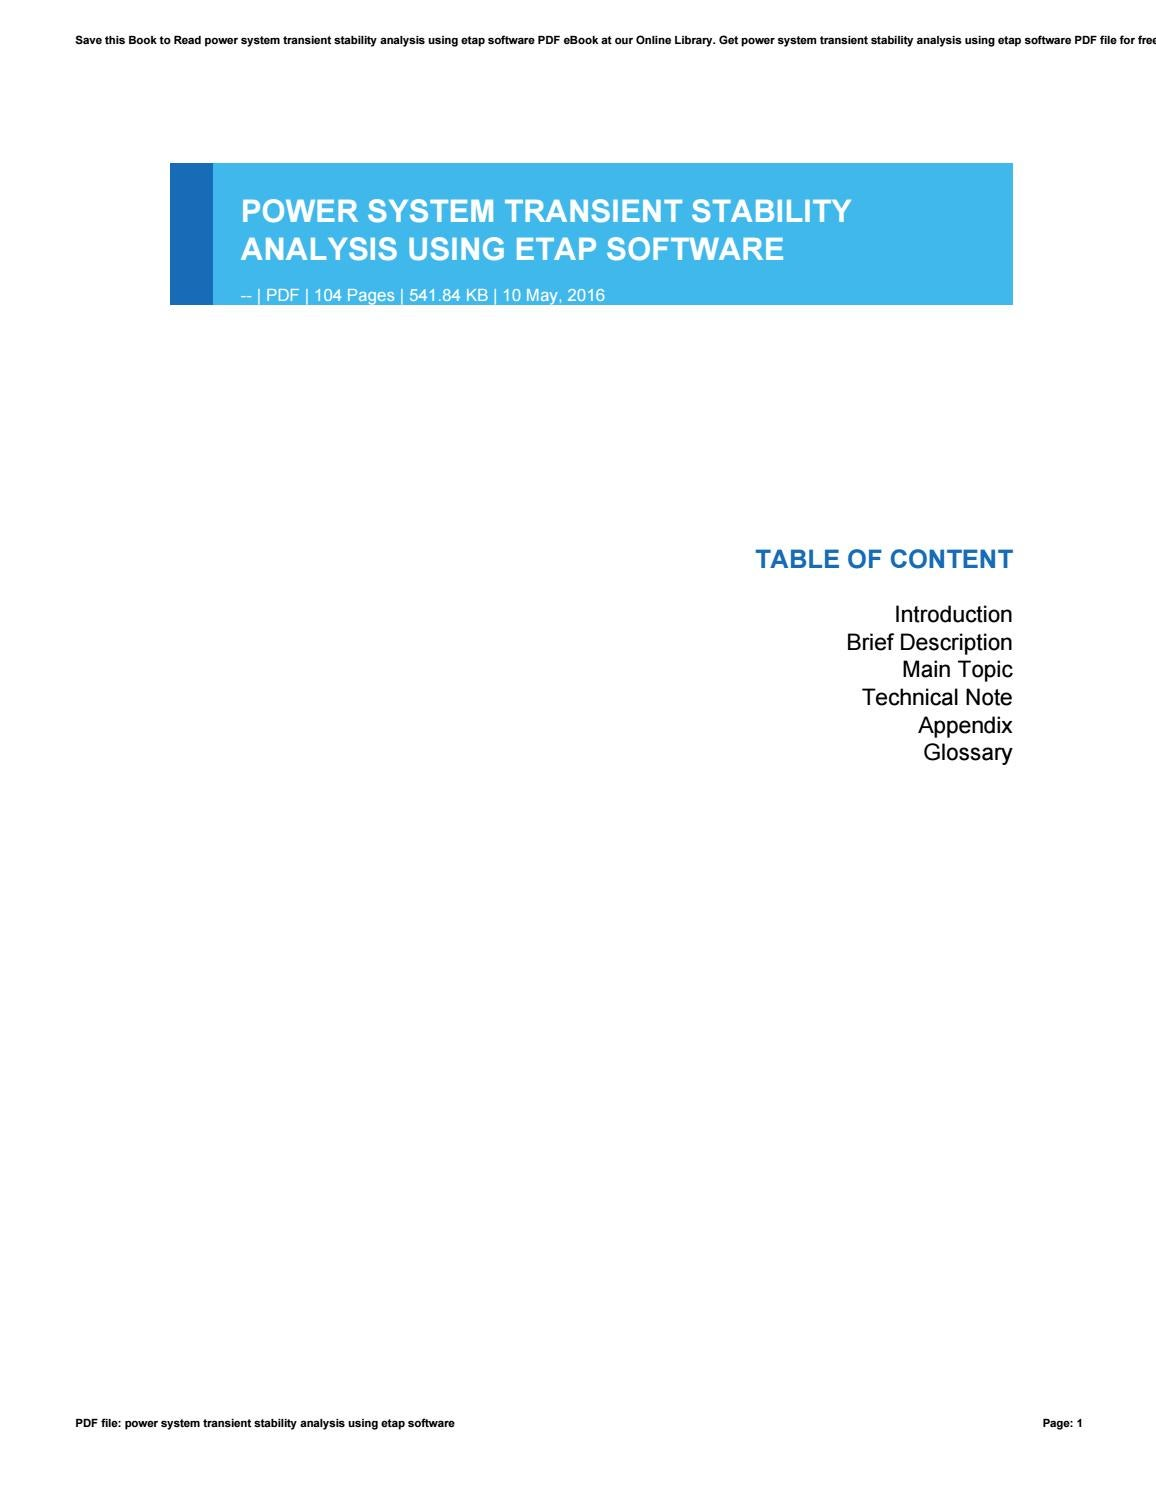 Power system transient stability analysis using etap software by